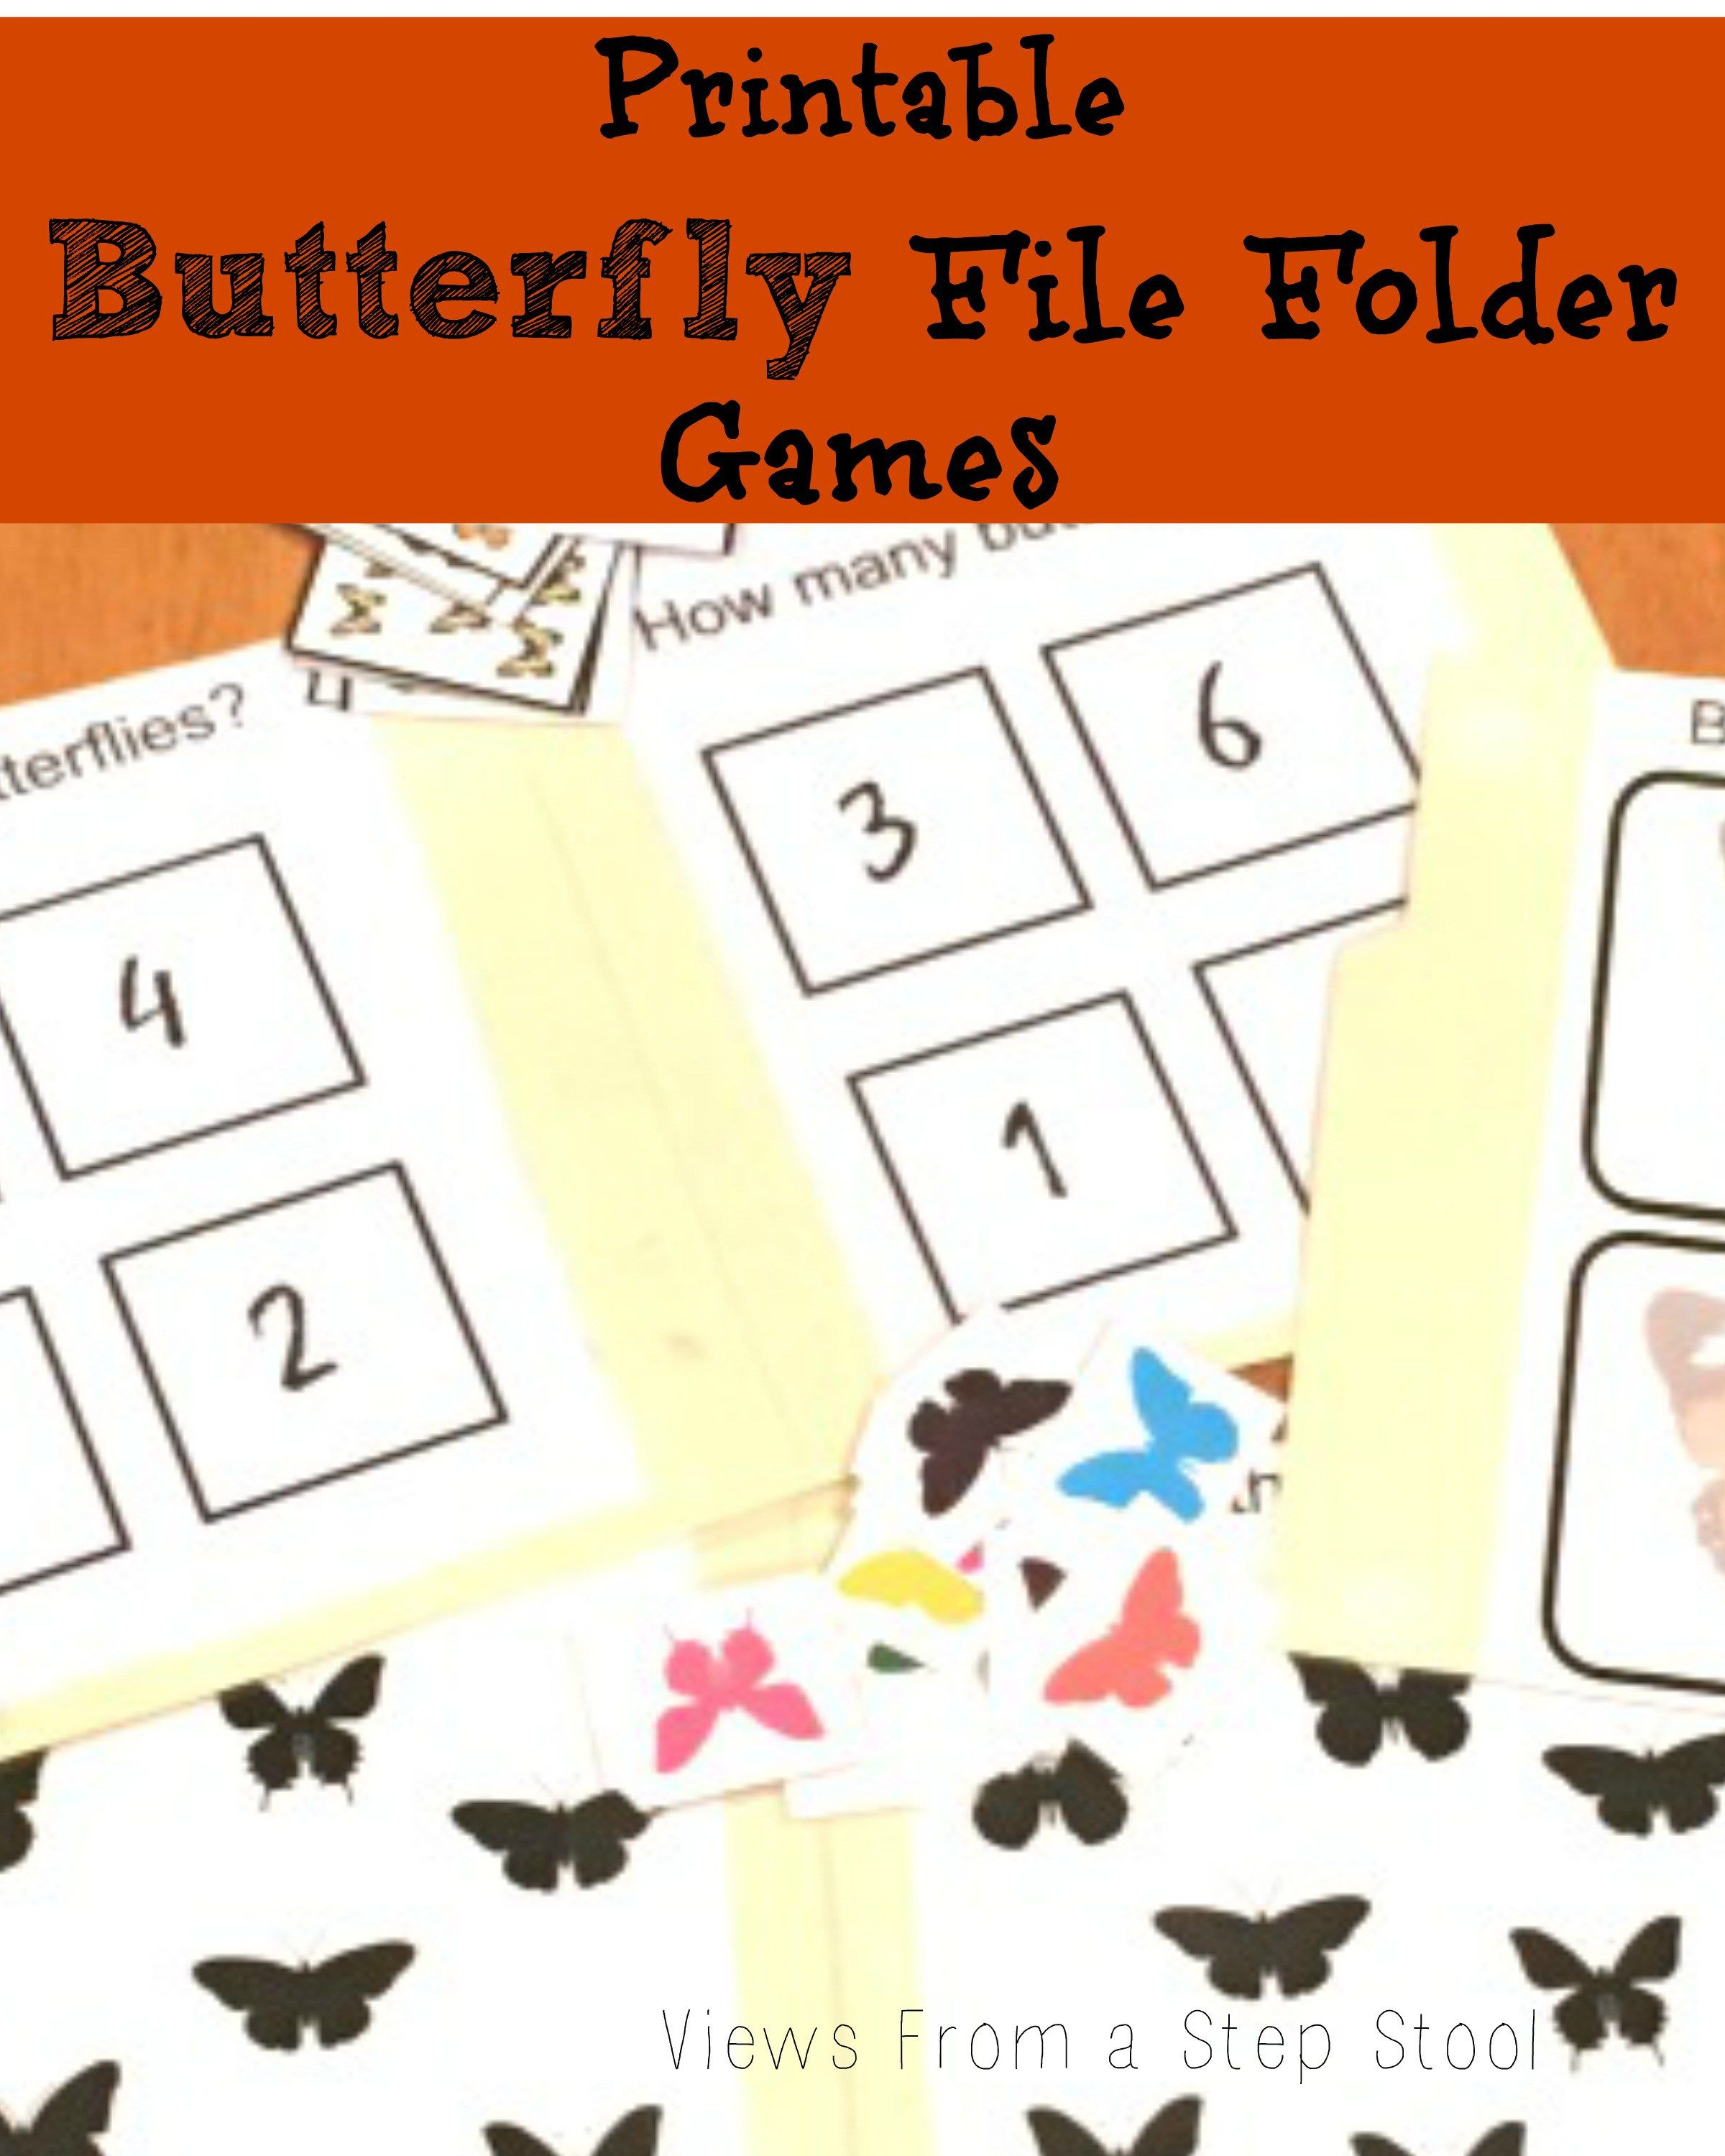 Butterfly File Folder Games: Free Printable!   Views From A Step - Free Printable File Folder Games